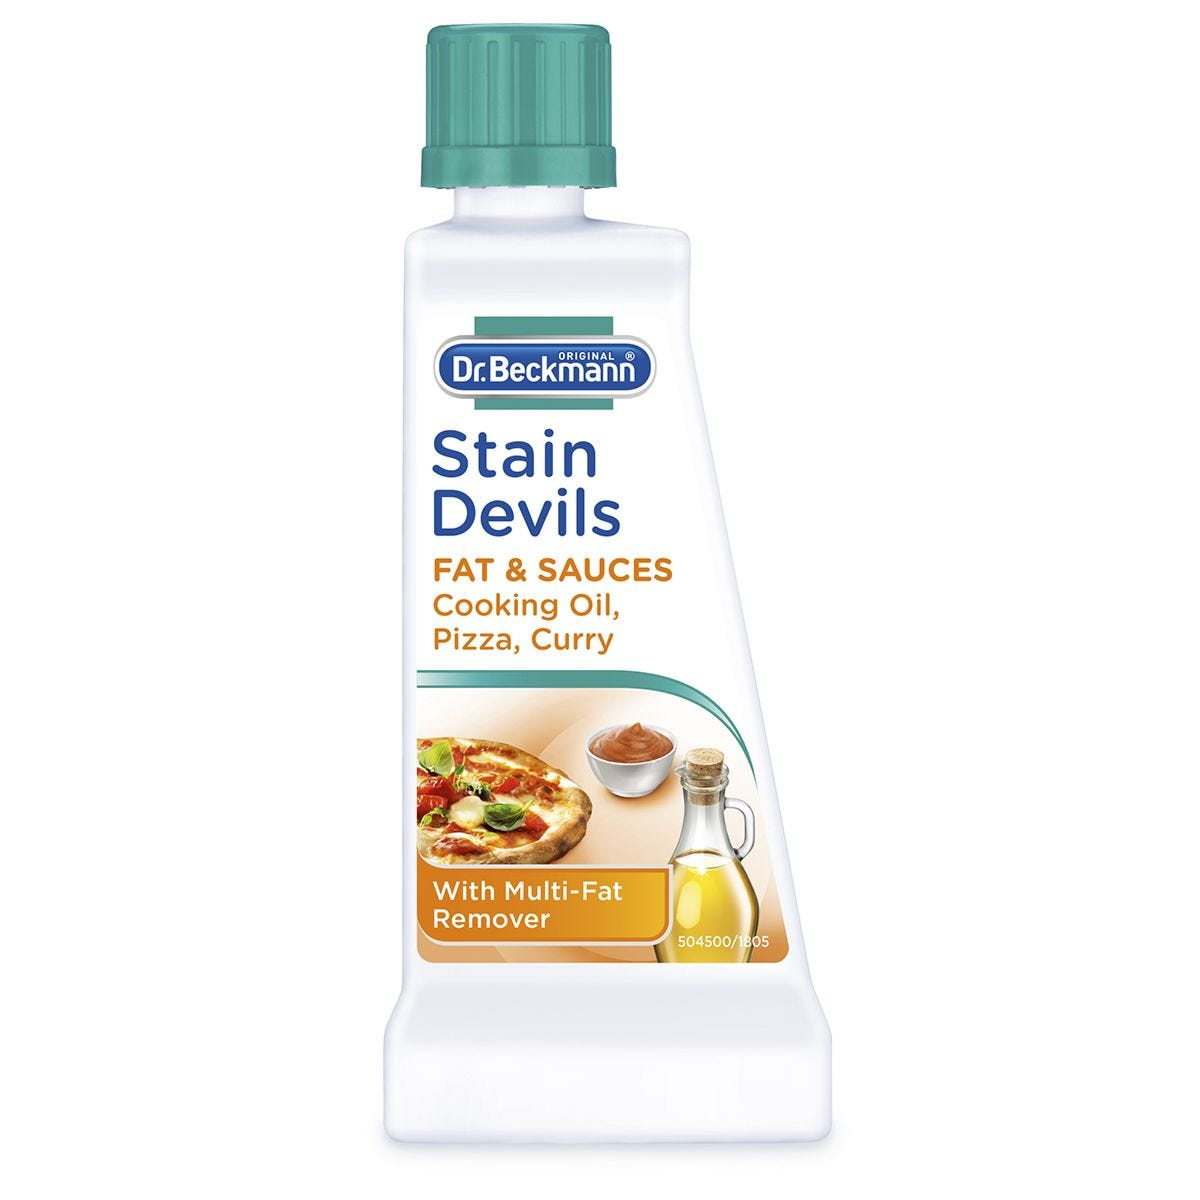 Dr Beckmann Stain Devils Oil, Fat & Grease Remover